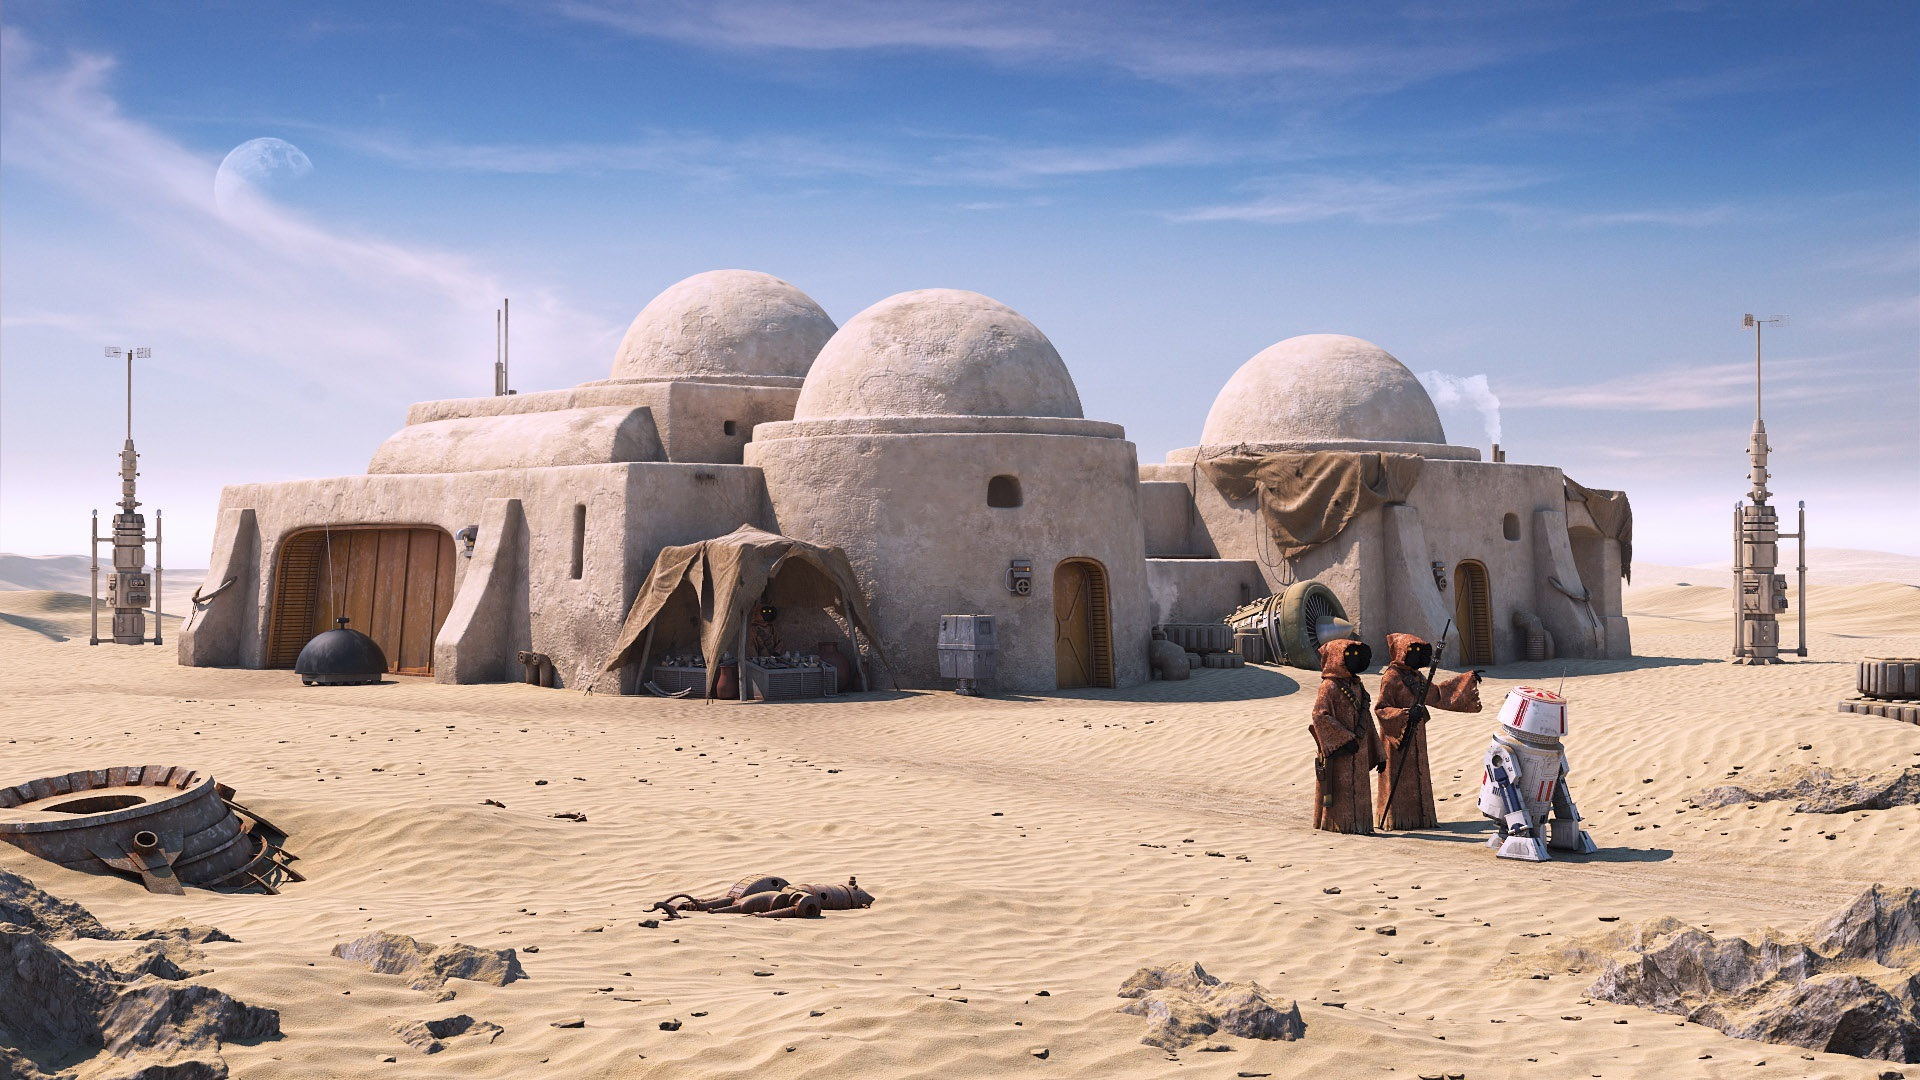 Star Wars Tatooine Roboter Wüste 1920x1080 Full Hd 2k